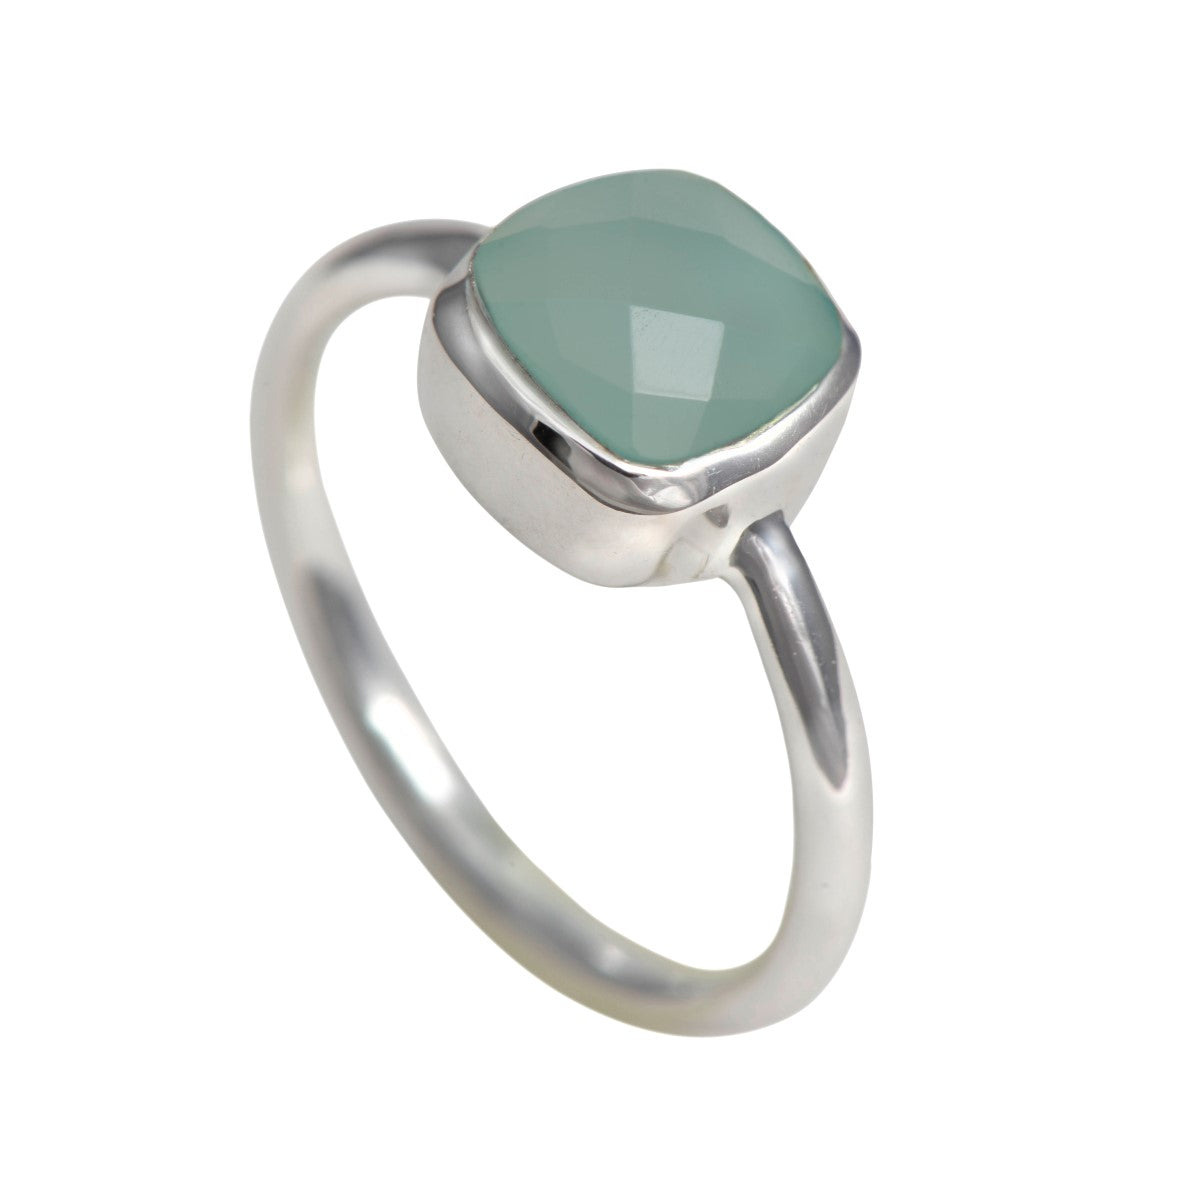 Faceted Square Cut Natural Gemstone Sterling Silver Solitaire Ring - Aqua Chalcedony